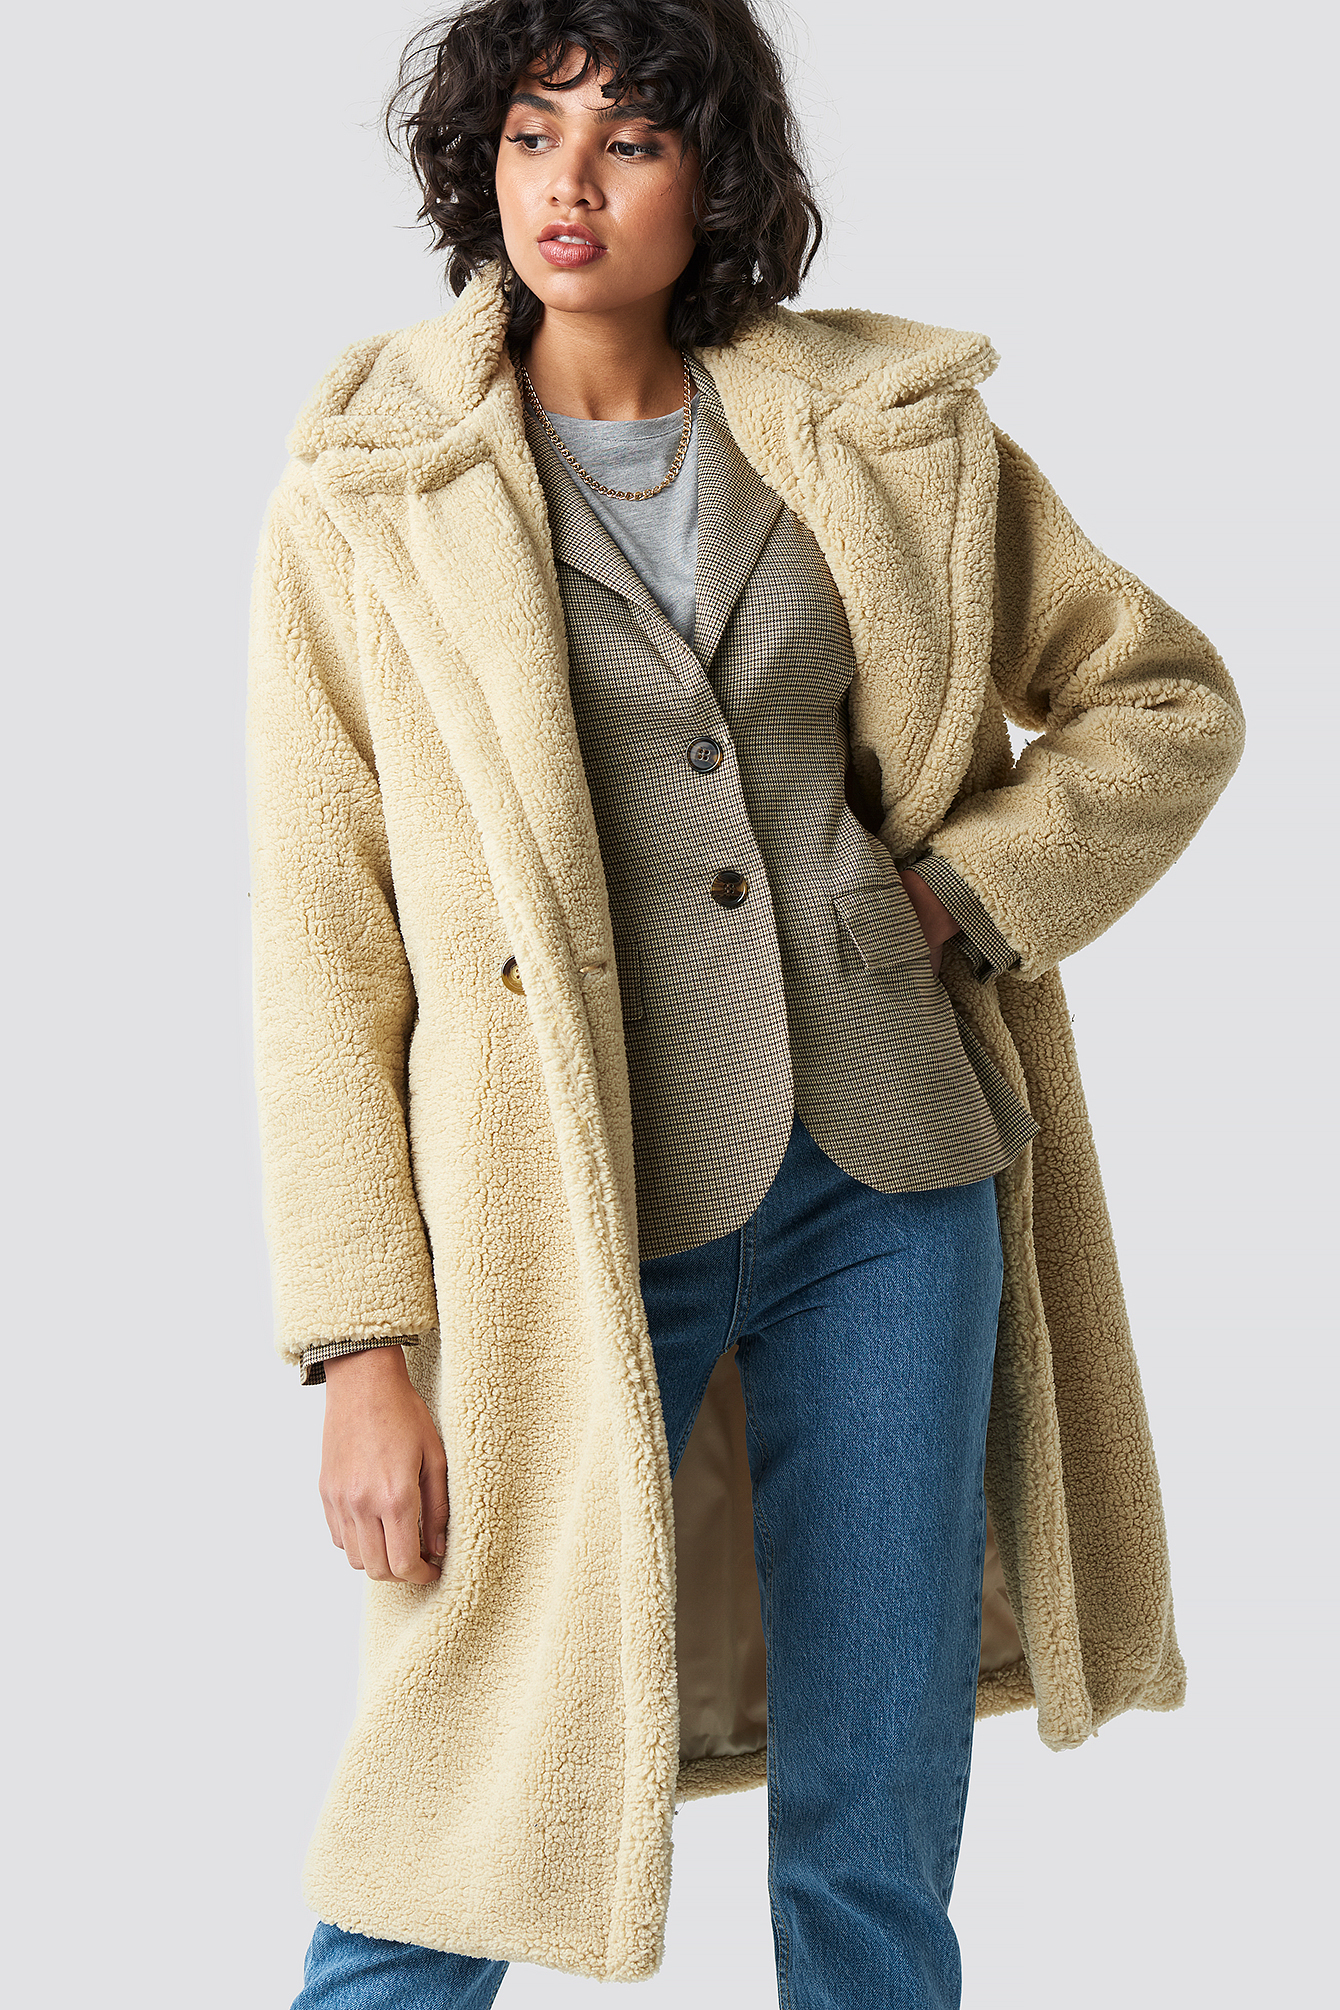 COLOURFUL REBEL Nora Long Teddy Coat - Beige